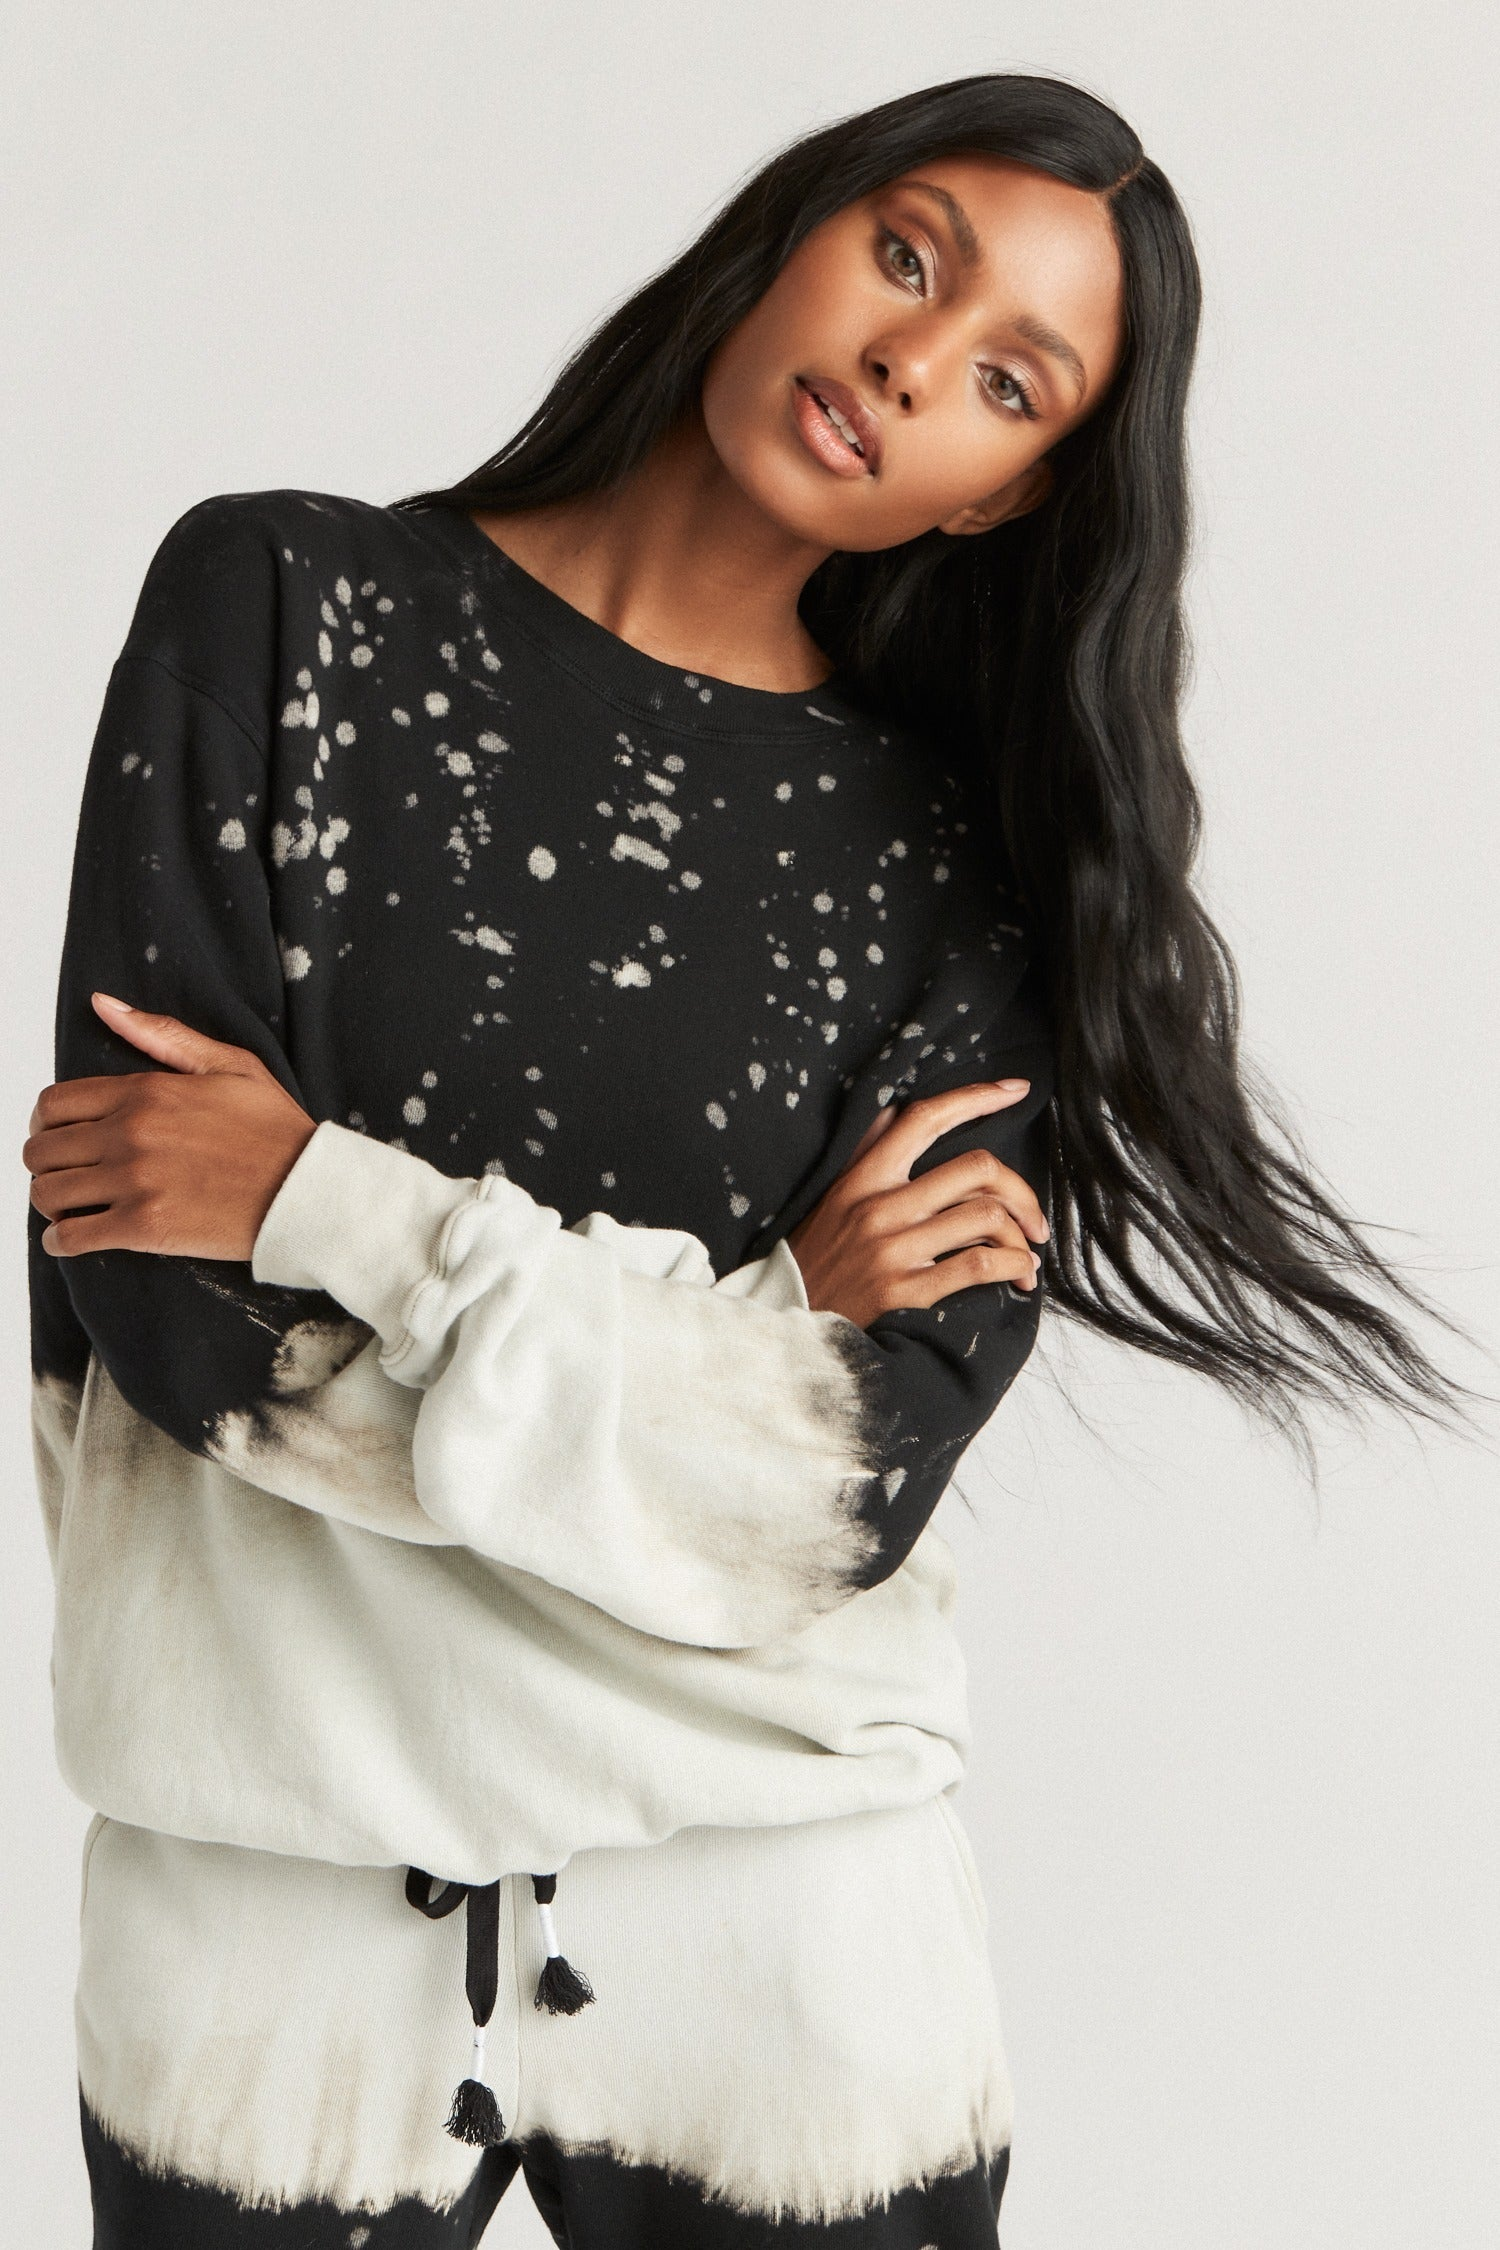 MASON SWEATSHIRT- MIDNIGHT SPLATTER